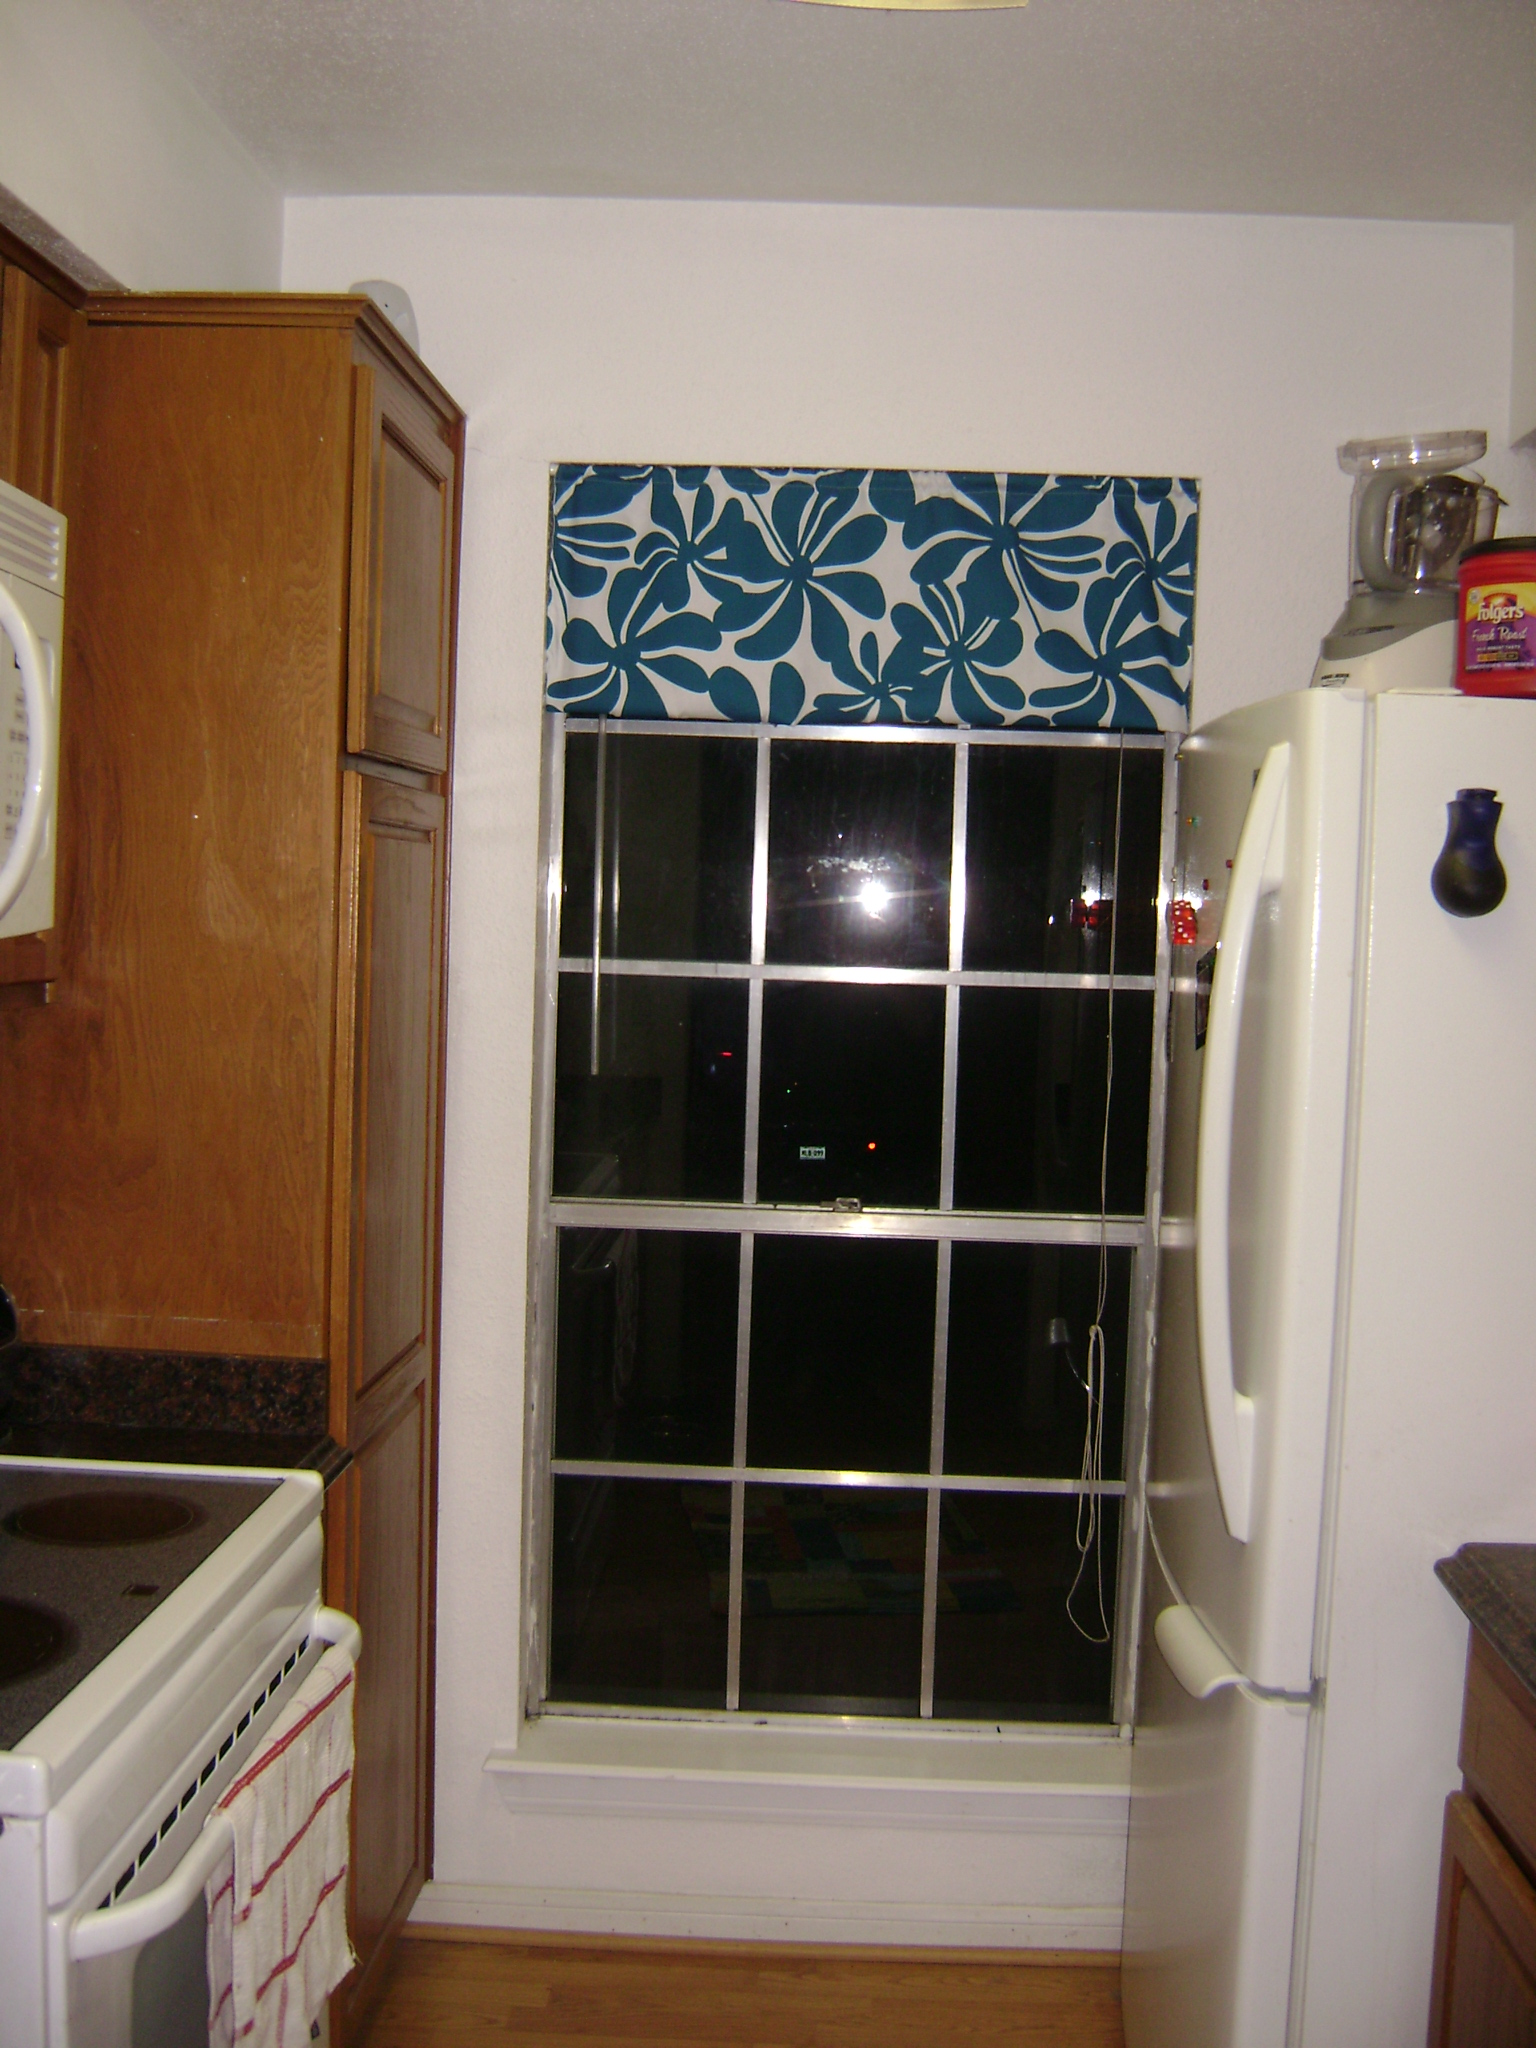 Pleasant Kitchen Valance Tutorial Sew Vac Outlet Humble Sewing Download Free Architecture Designs Estepponolmadebymaigaardcom